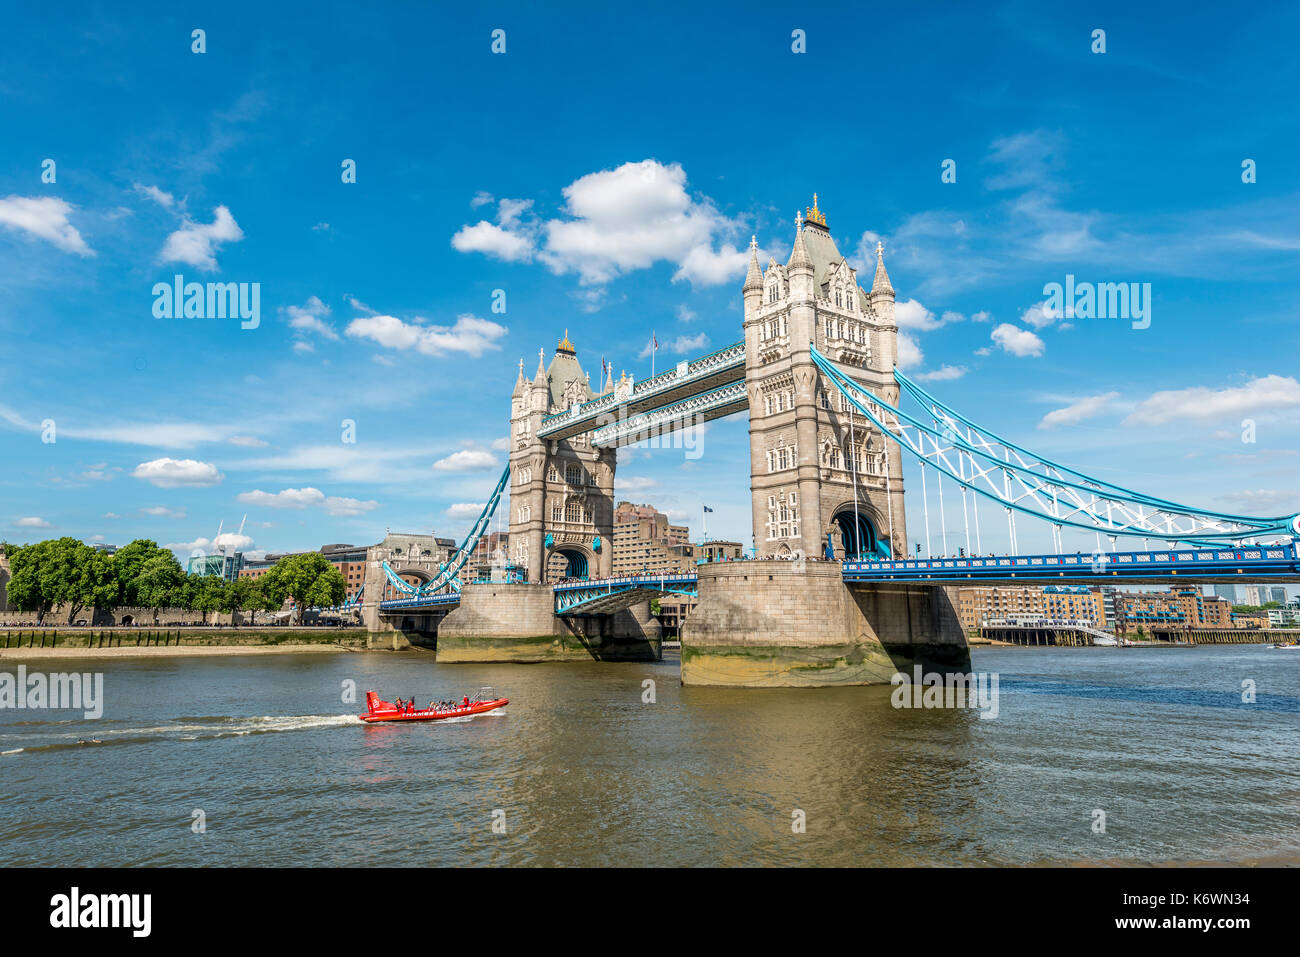 Tower bridge sur la Tamise, Southwark, Londres, Angleterre, Grande-Bretagne Photo Stock